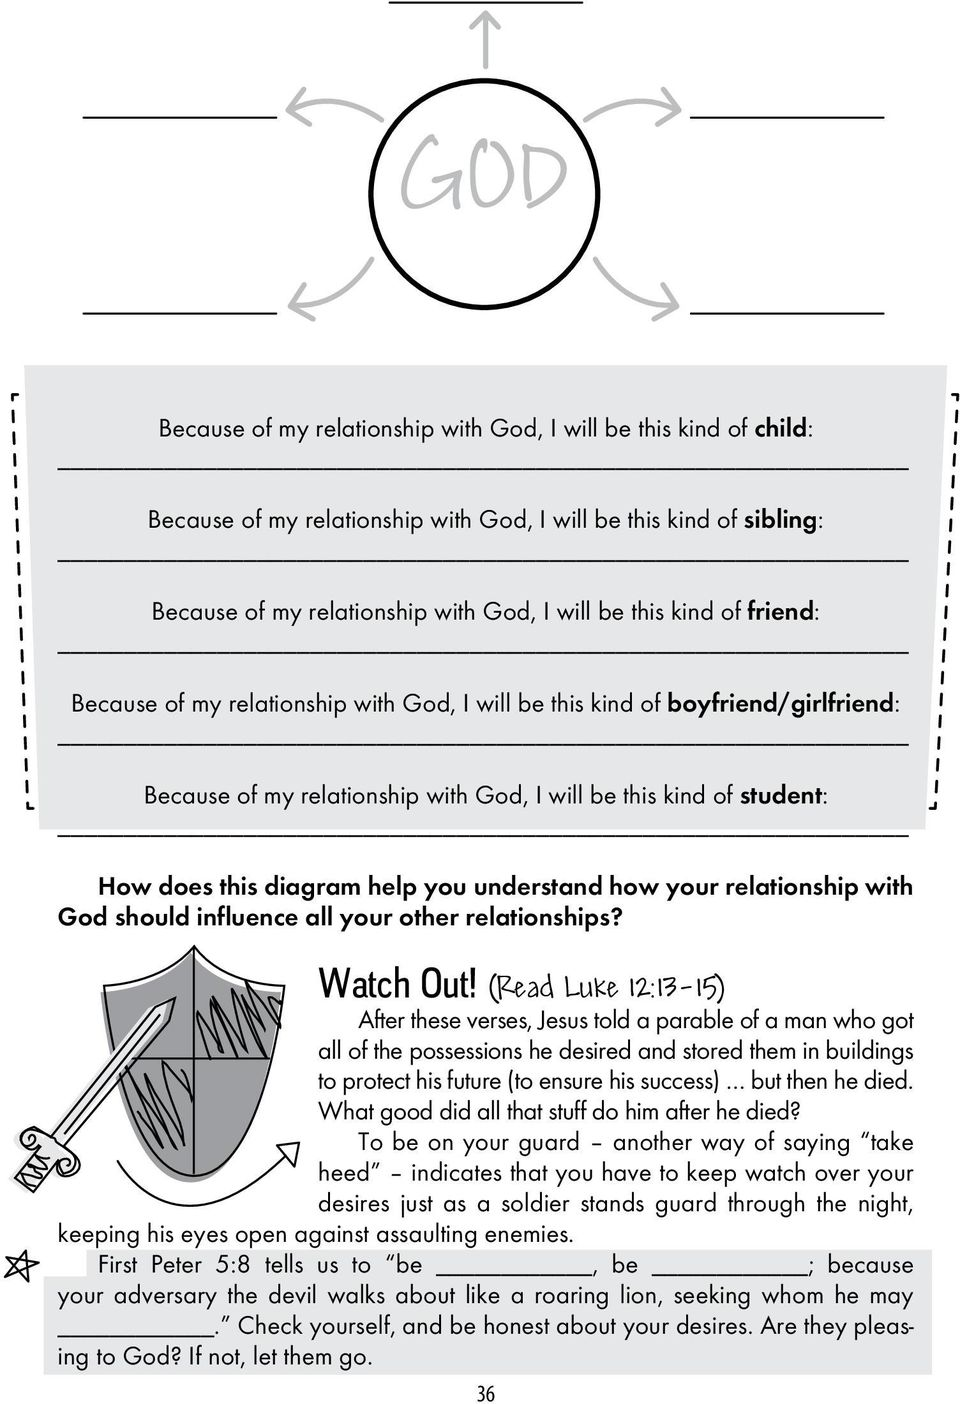 understand how your relationship with God should influence all your other relationships? Watch Out!